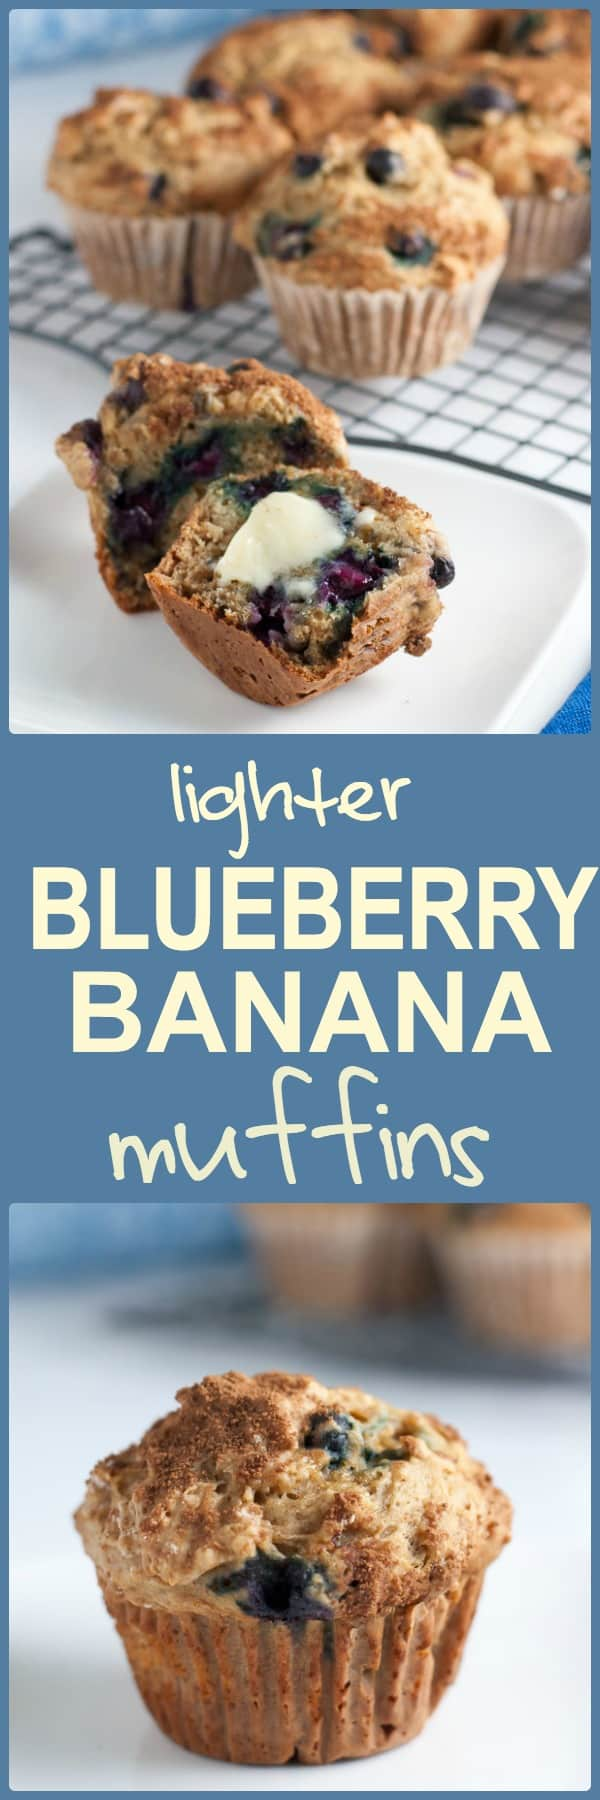 Healthy Low-Fat Blueberry Banana Muffins. Less sugar, less fat, less dairy, but ALL the flavour! |www.flavourandsavour.com